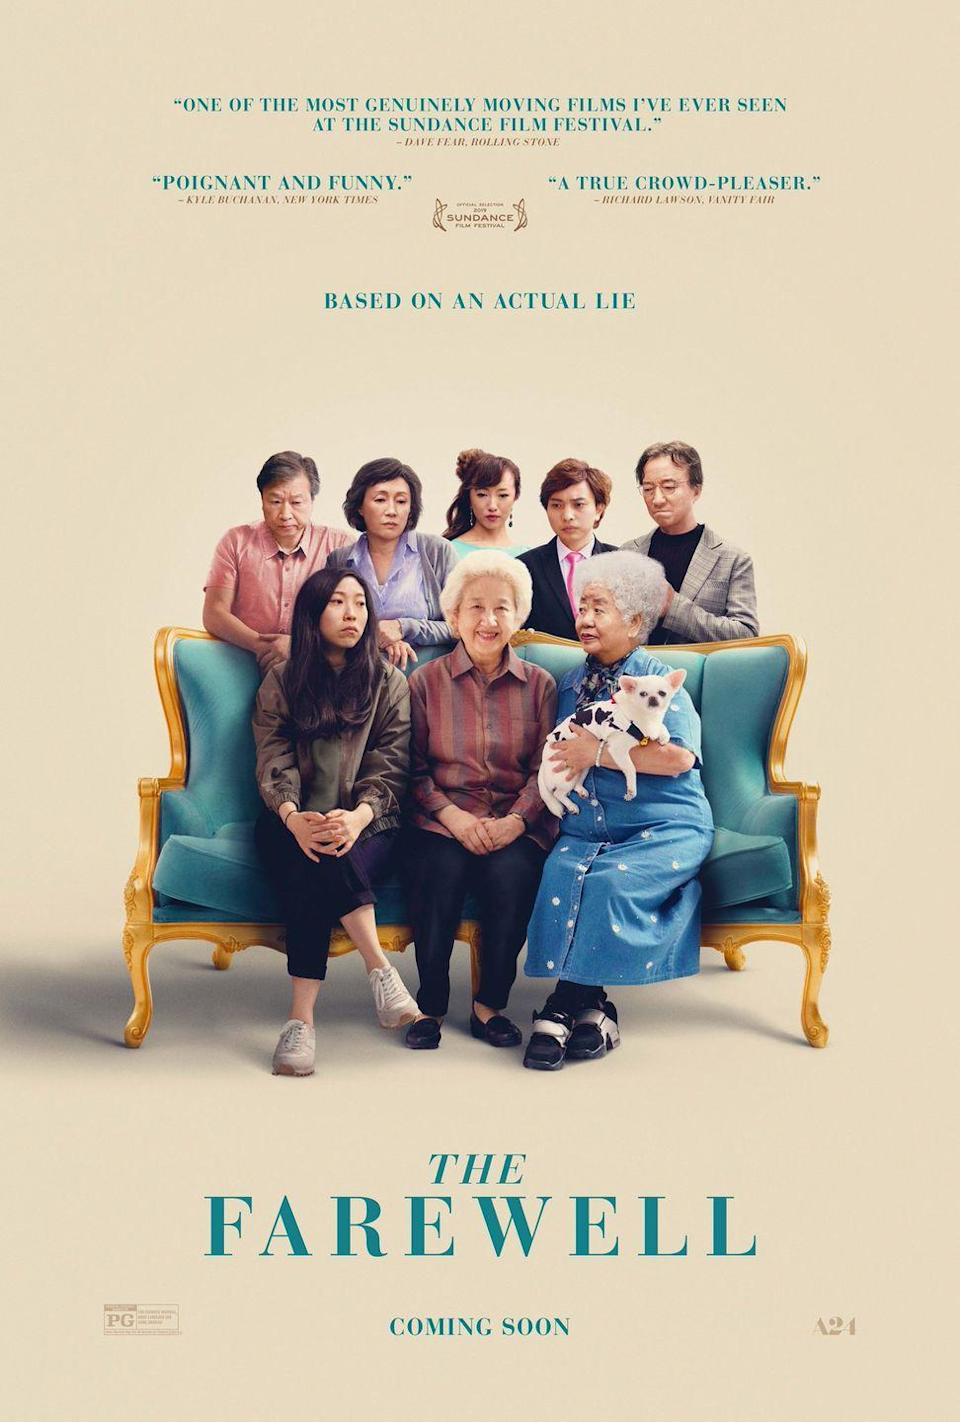 """<p><em>The Farewell</em> is (as you can see on the poster) """"based on an actual lie.""""Awkwafina stars as Billi, the granddaughter of a woman, Nai-Nai, whose family knows she only has weeks to live due to cancer. They try to protect Nai-Nai from the extent of her illness by not telling her about it. In a last effort to spend time with Nai-Nai and ensure her happiness, the whole family gets together for an impromptu wedding celebration.<br></p><p><a class=""""link rapid-noclick-resp"""" href=""""https://www.amazon.com/dp/B07V4TH3M5/?ref=dvm_us_dl_sl_go_smd_20TF%7Cm_gRL2qYPRc_c418179654619&gclid=Cj0KCQjwvr6EBhDOARIsAPpqUPGnZkeijEX3-5jRYXfdtNylyJHI14N5XxZFPW8zpGAsMmiugpk7XkwaAn-nEALw_wcB&tag=syn-yahoo-20&ascsubtag=%5Bartid%7C10063.g.36572054%5Bsrc%7Cyahoo-us"""" rel=""""nofollow noopener"""" target=""""_blank"""" data-ylk=""""slk:Watch Here"""">Watch Here</a></p>"""